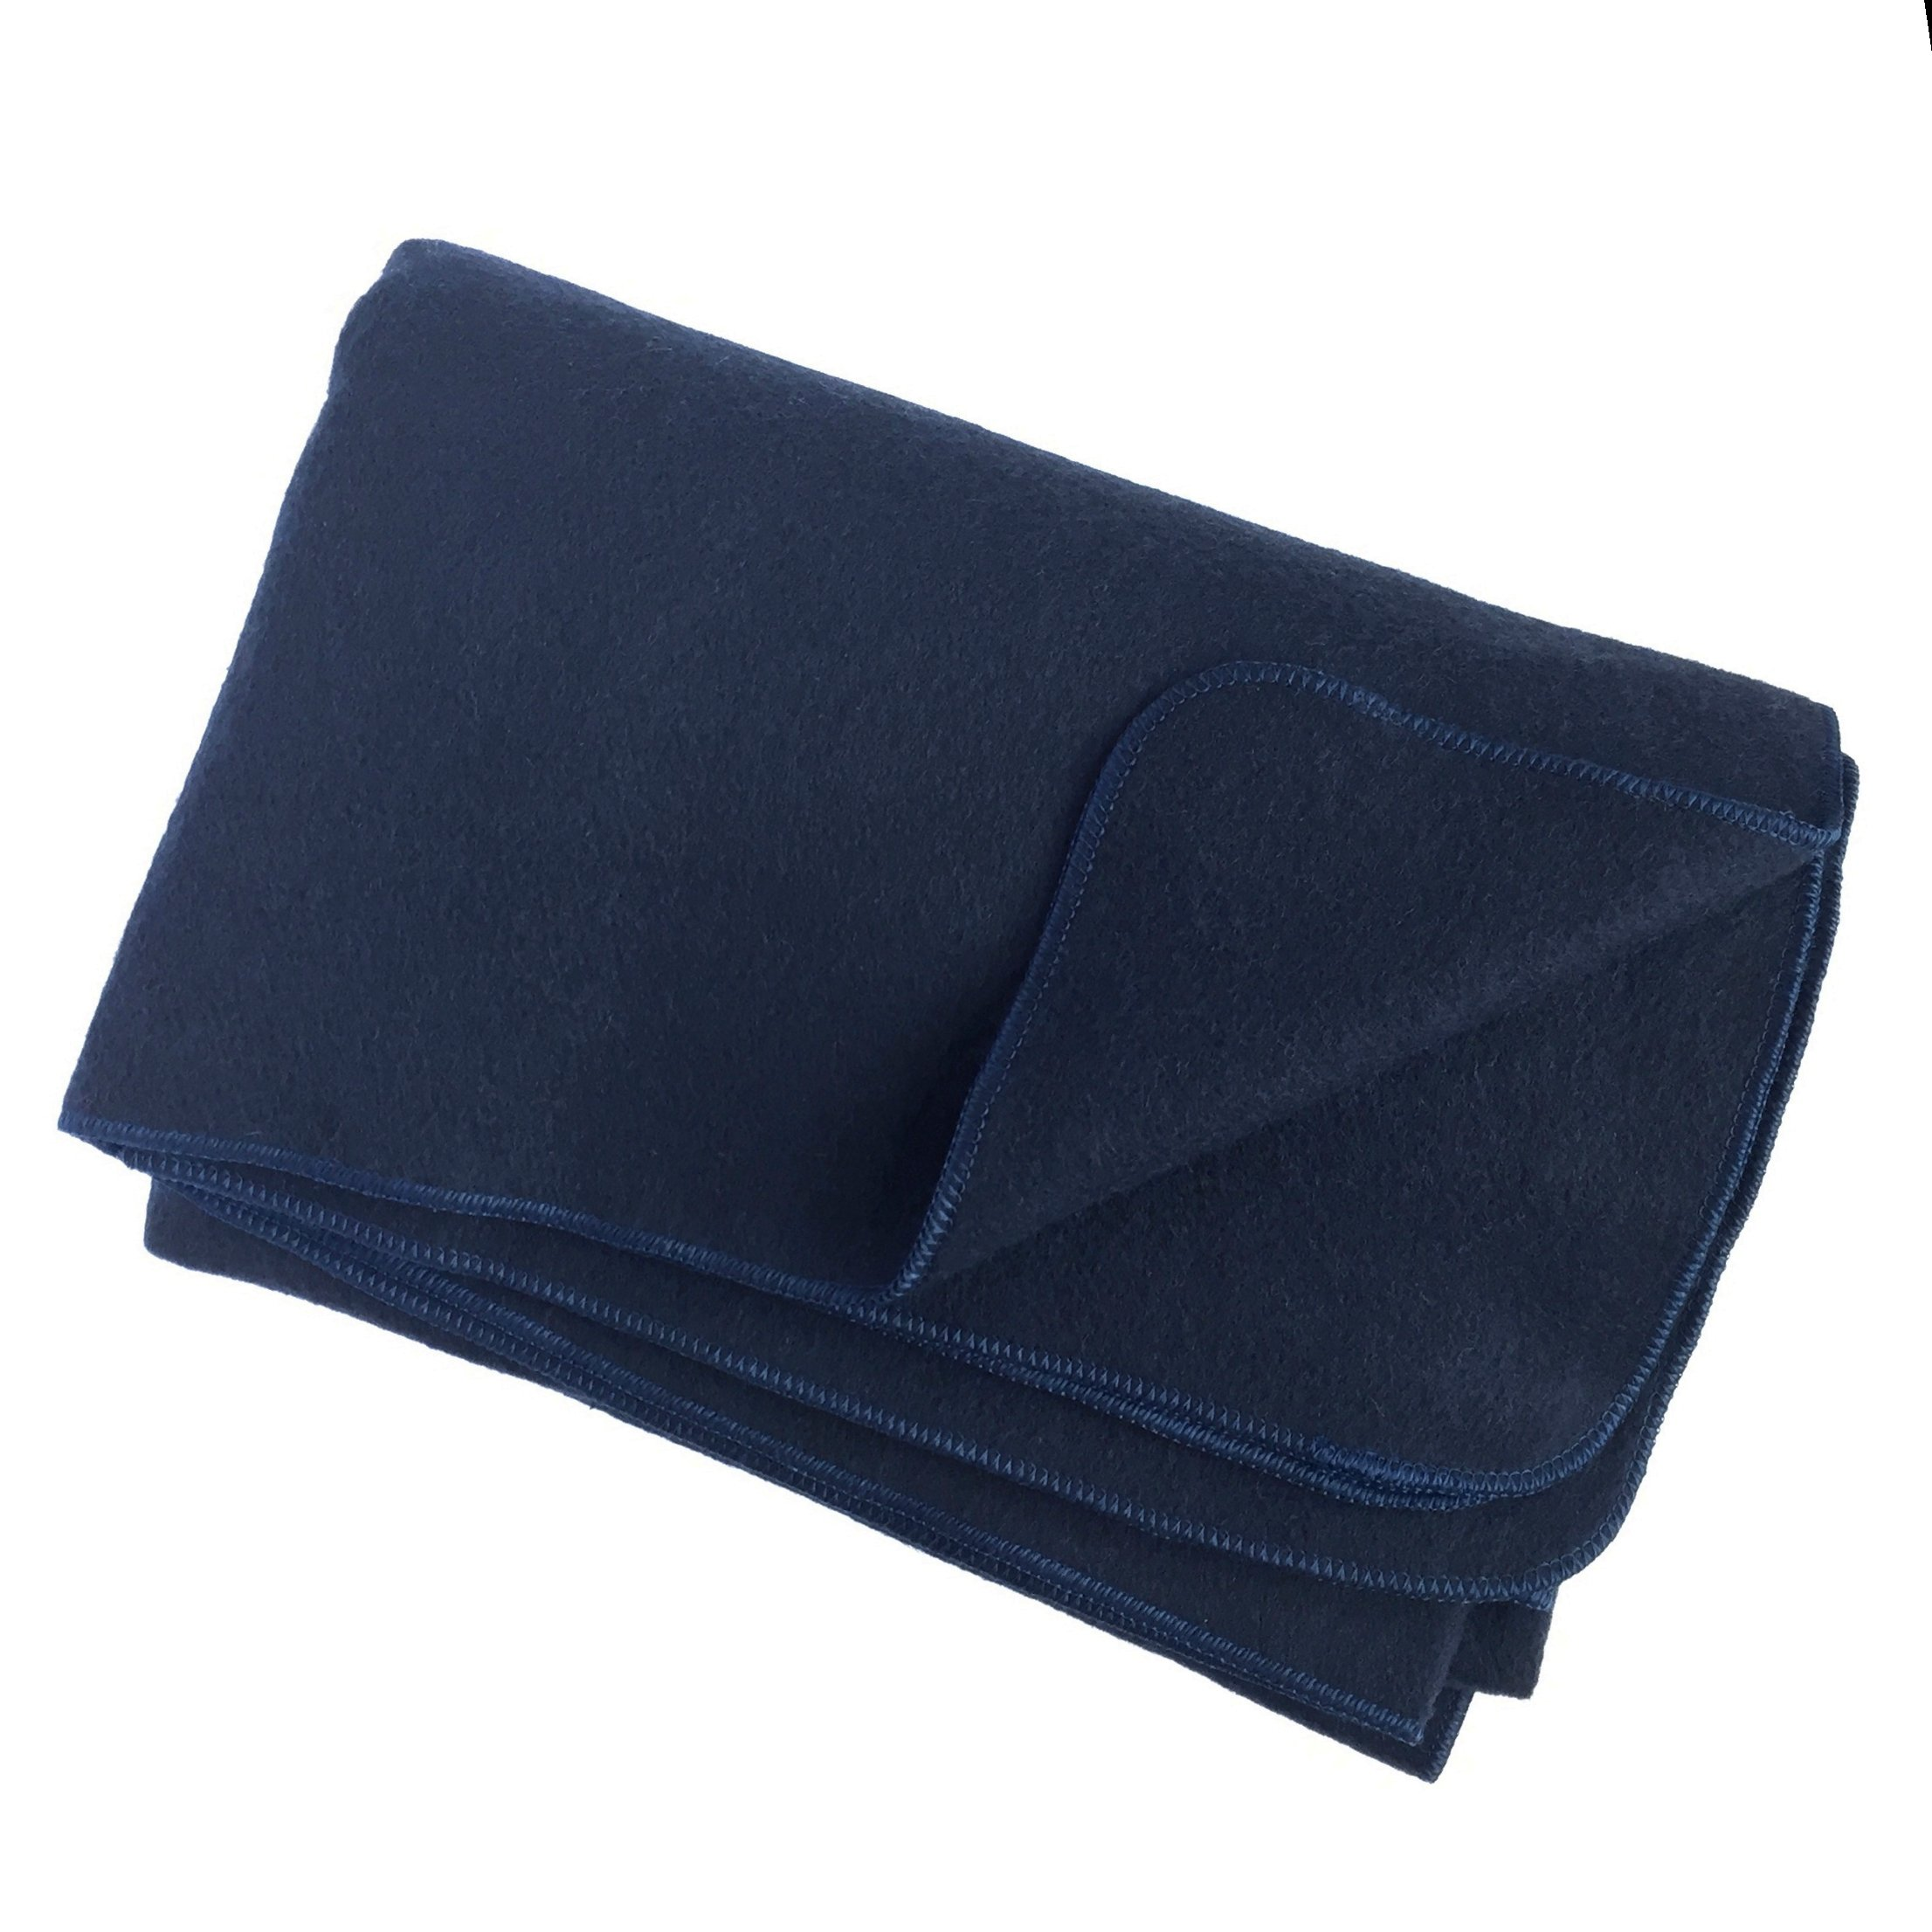 EKTOS 100% Wool Blanket, Navy Blue, Warm & Heavy 5.5 lbs, Large Washable 66''x90'' Size, Perfect for Outdoor Camping, Survival & Emergency Preparedness Use by EKTOS (Image #8)